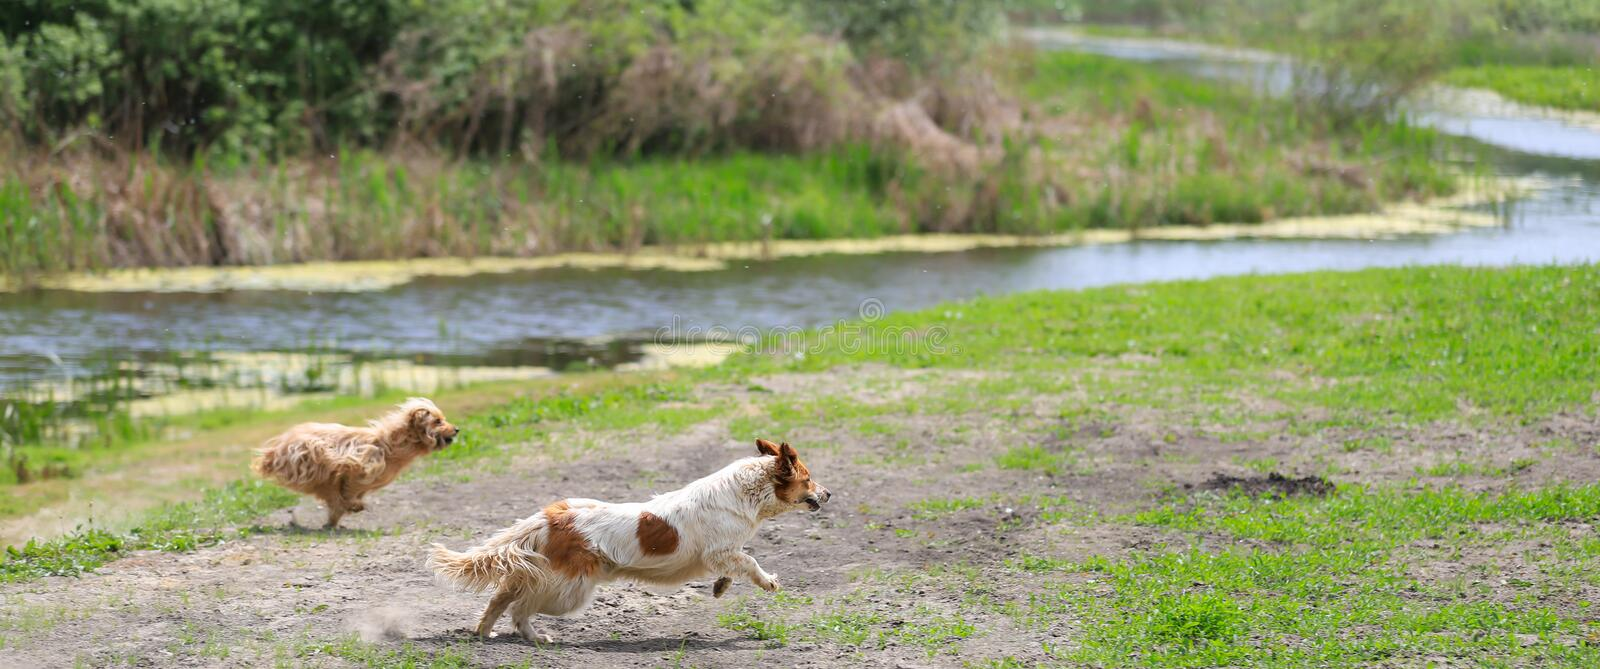 Two happy dogs playing on field with canal in background. Beautifull dogs play on field with canal in background, chasing a ball stock image